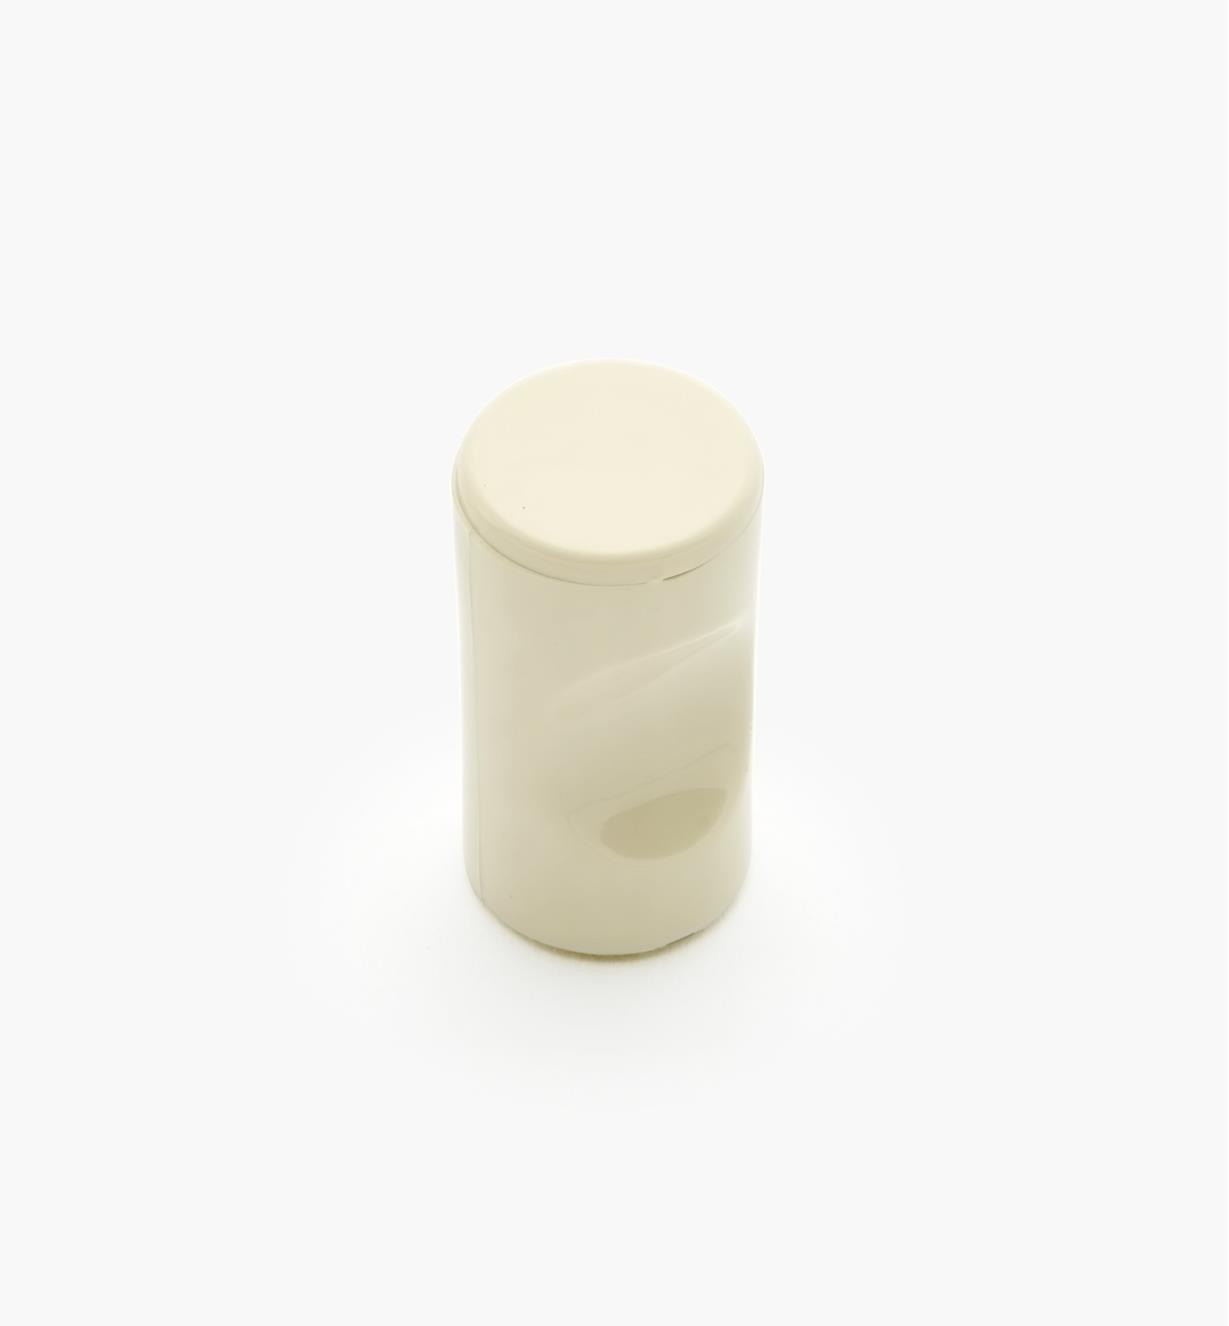 "01W4513 - 13mm x 1 1/8"" Beige Notched Pull/Knob"